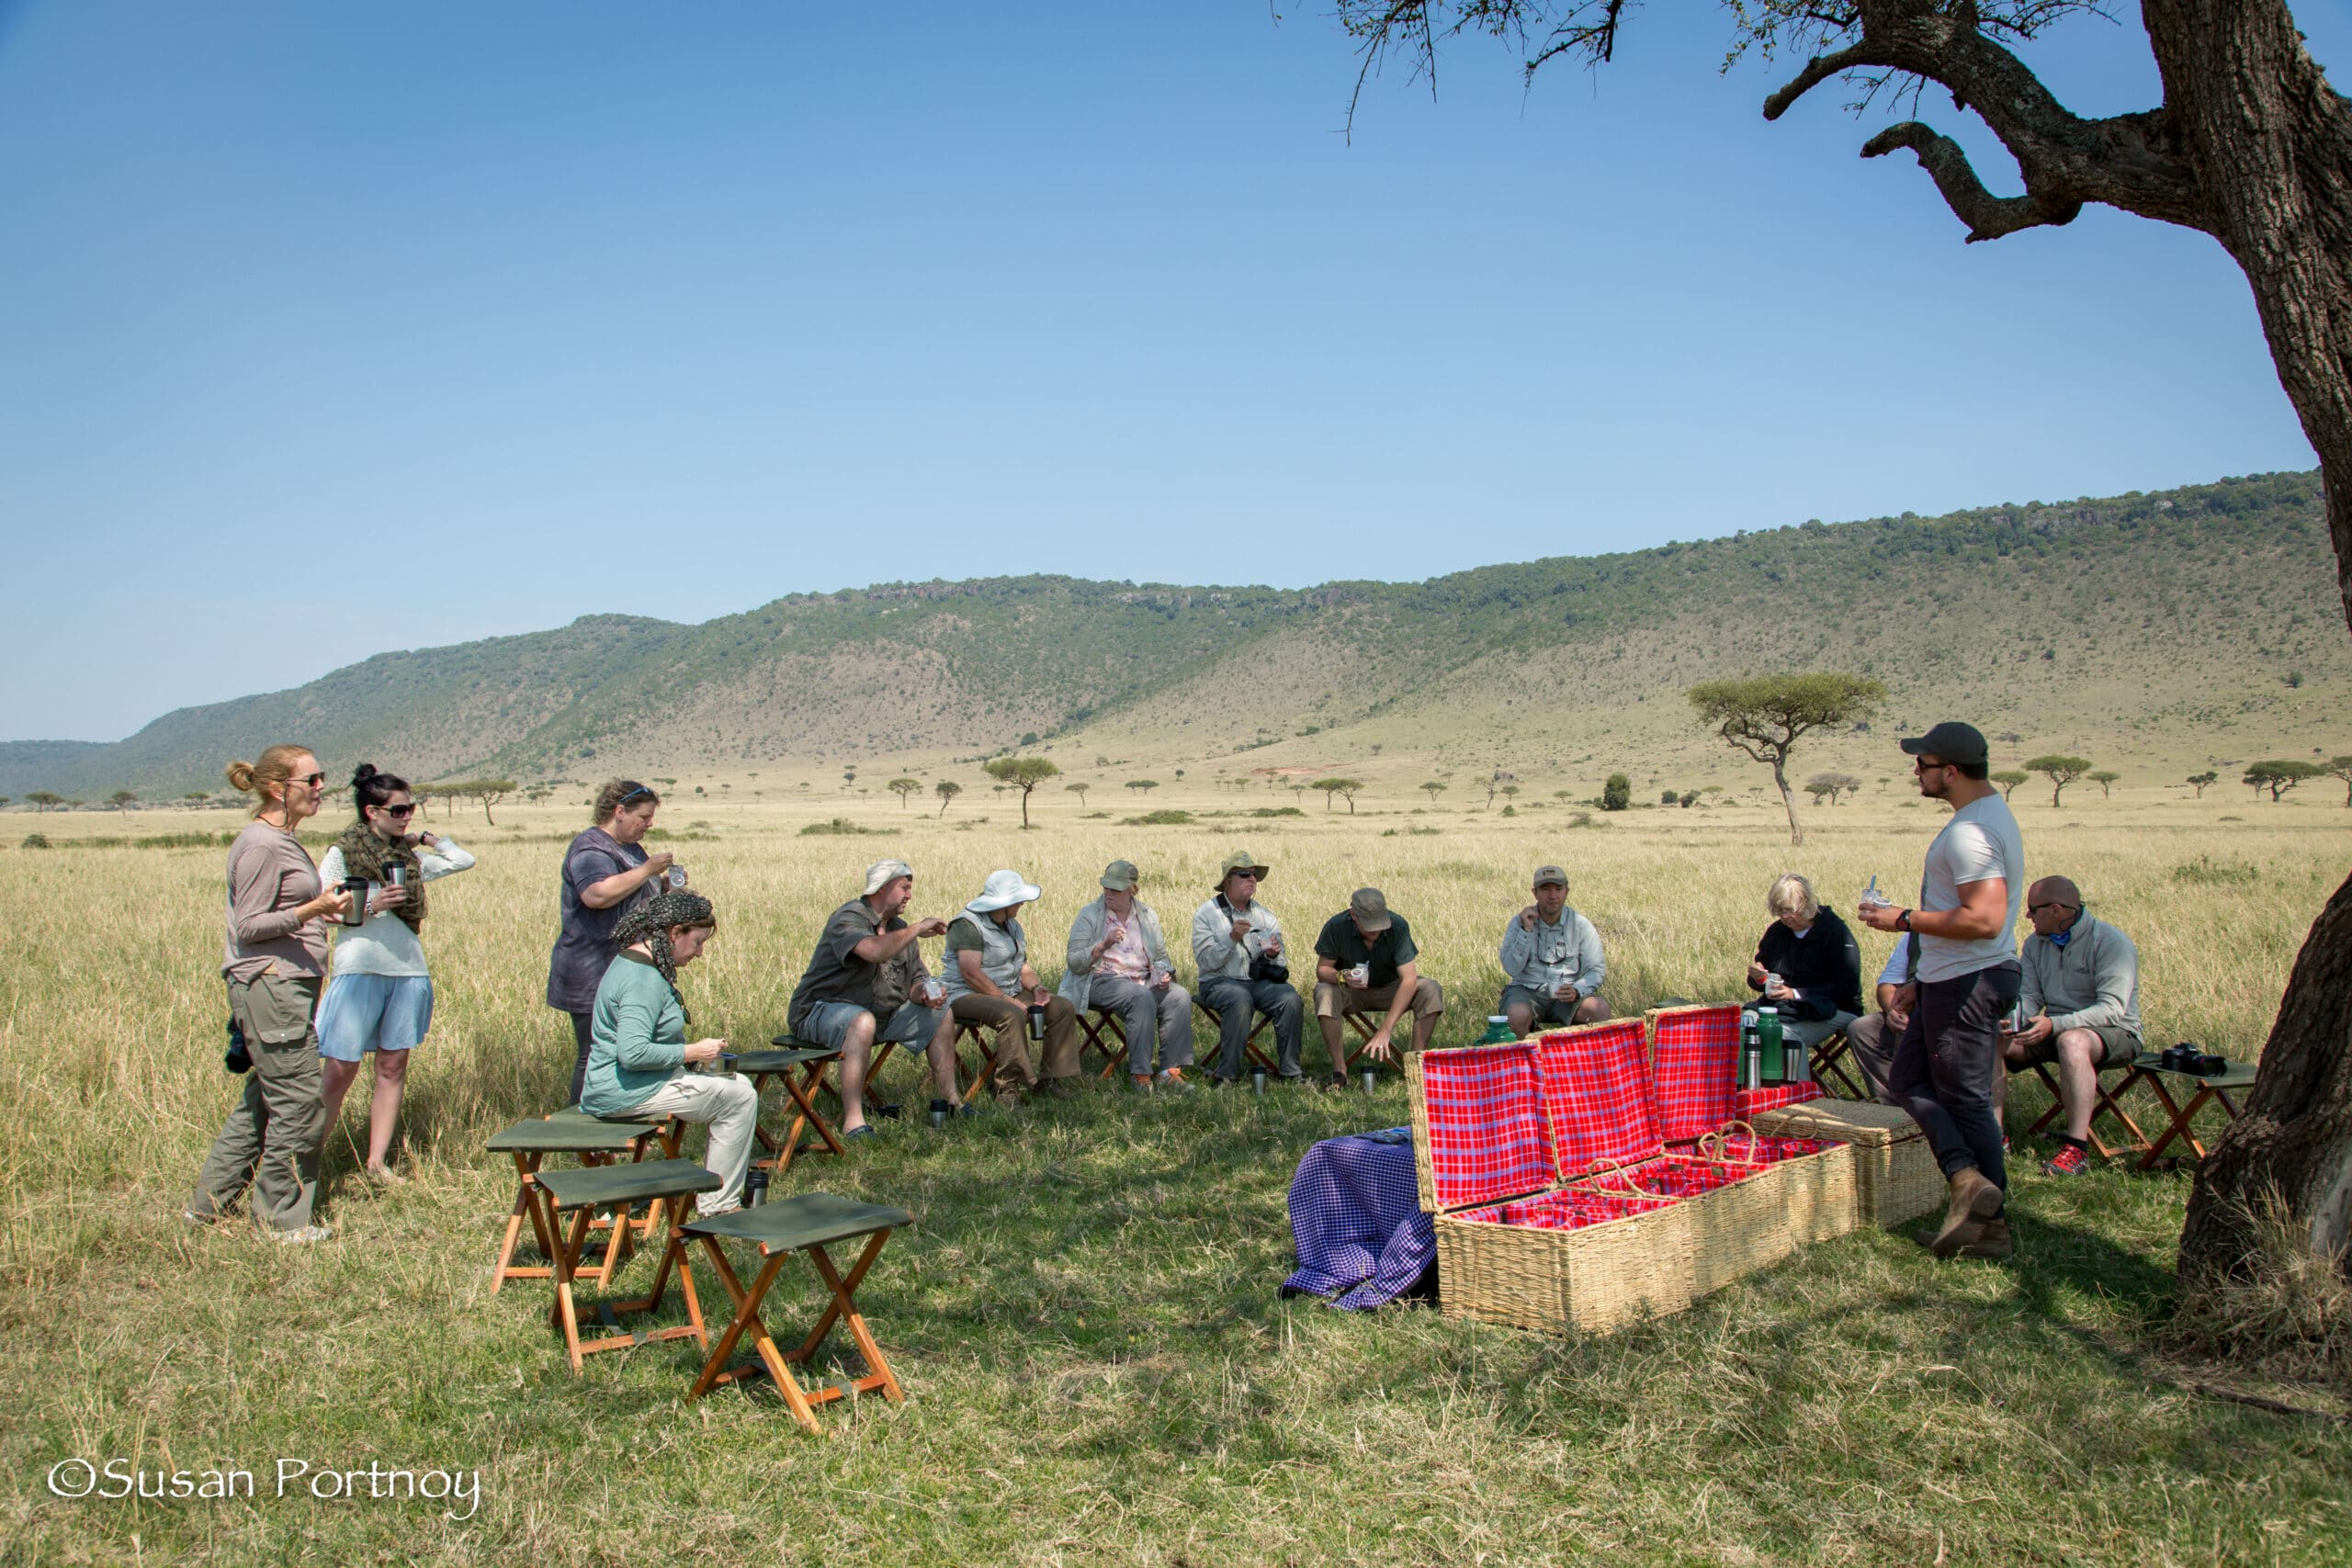 A casual breakfast picnic in the Mara